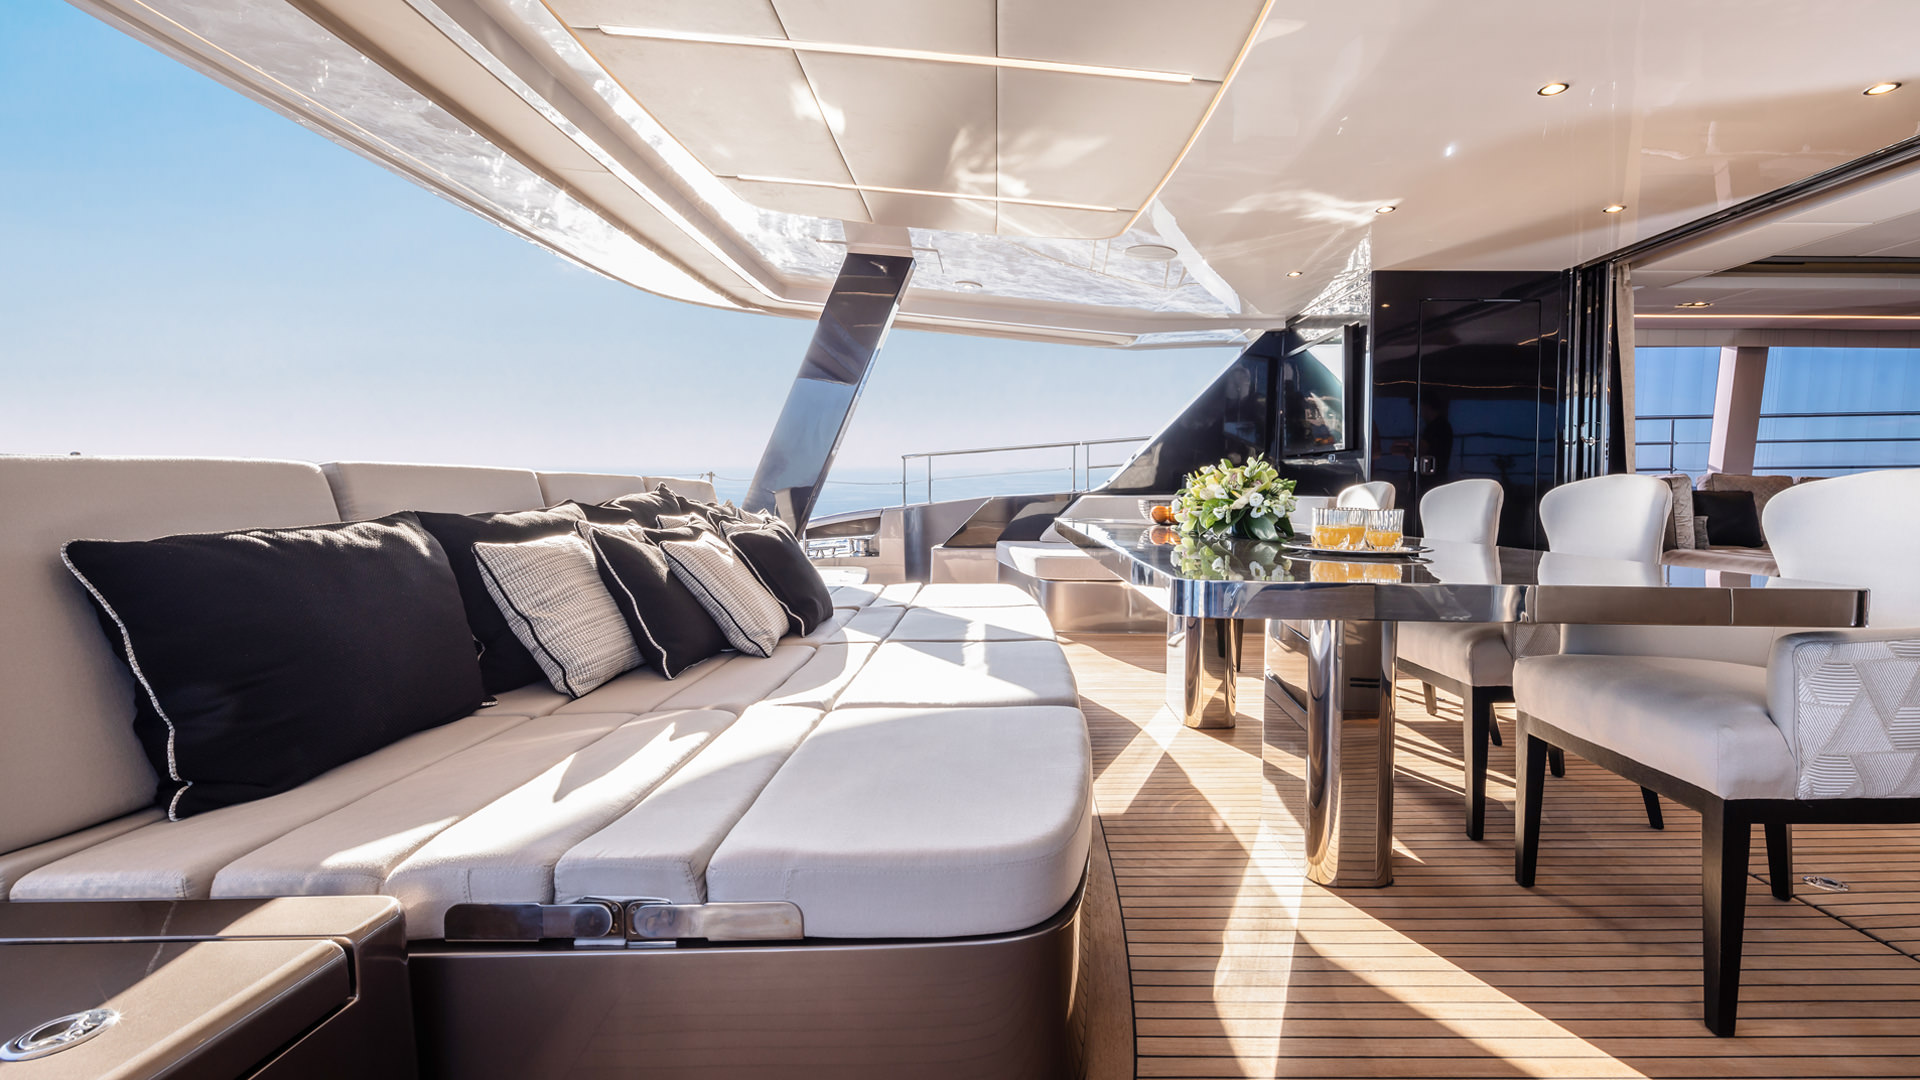 Luxury custom yachts, catamarans, power boats design